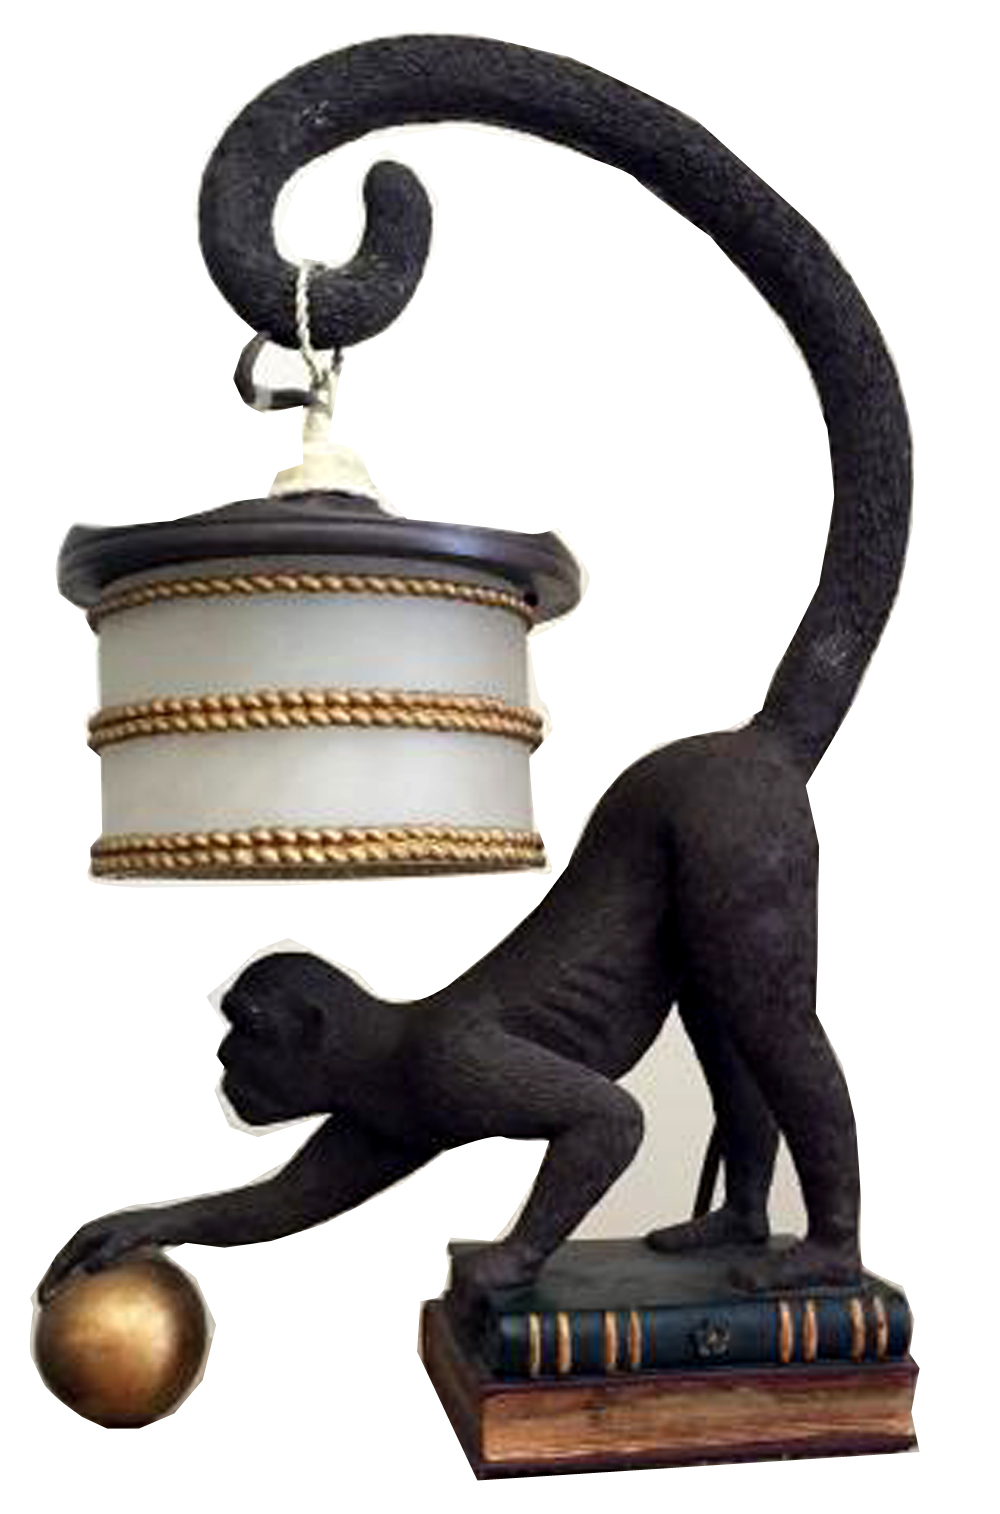 Amazing Art Deco Monkey Lamp American 1940s Modernism